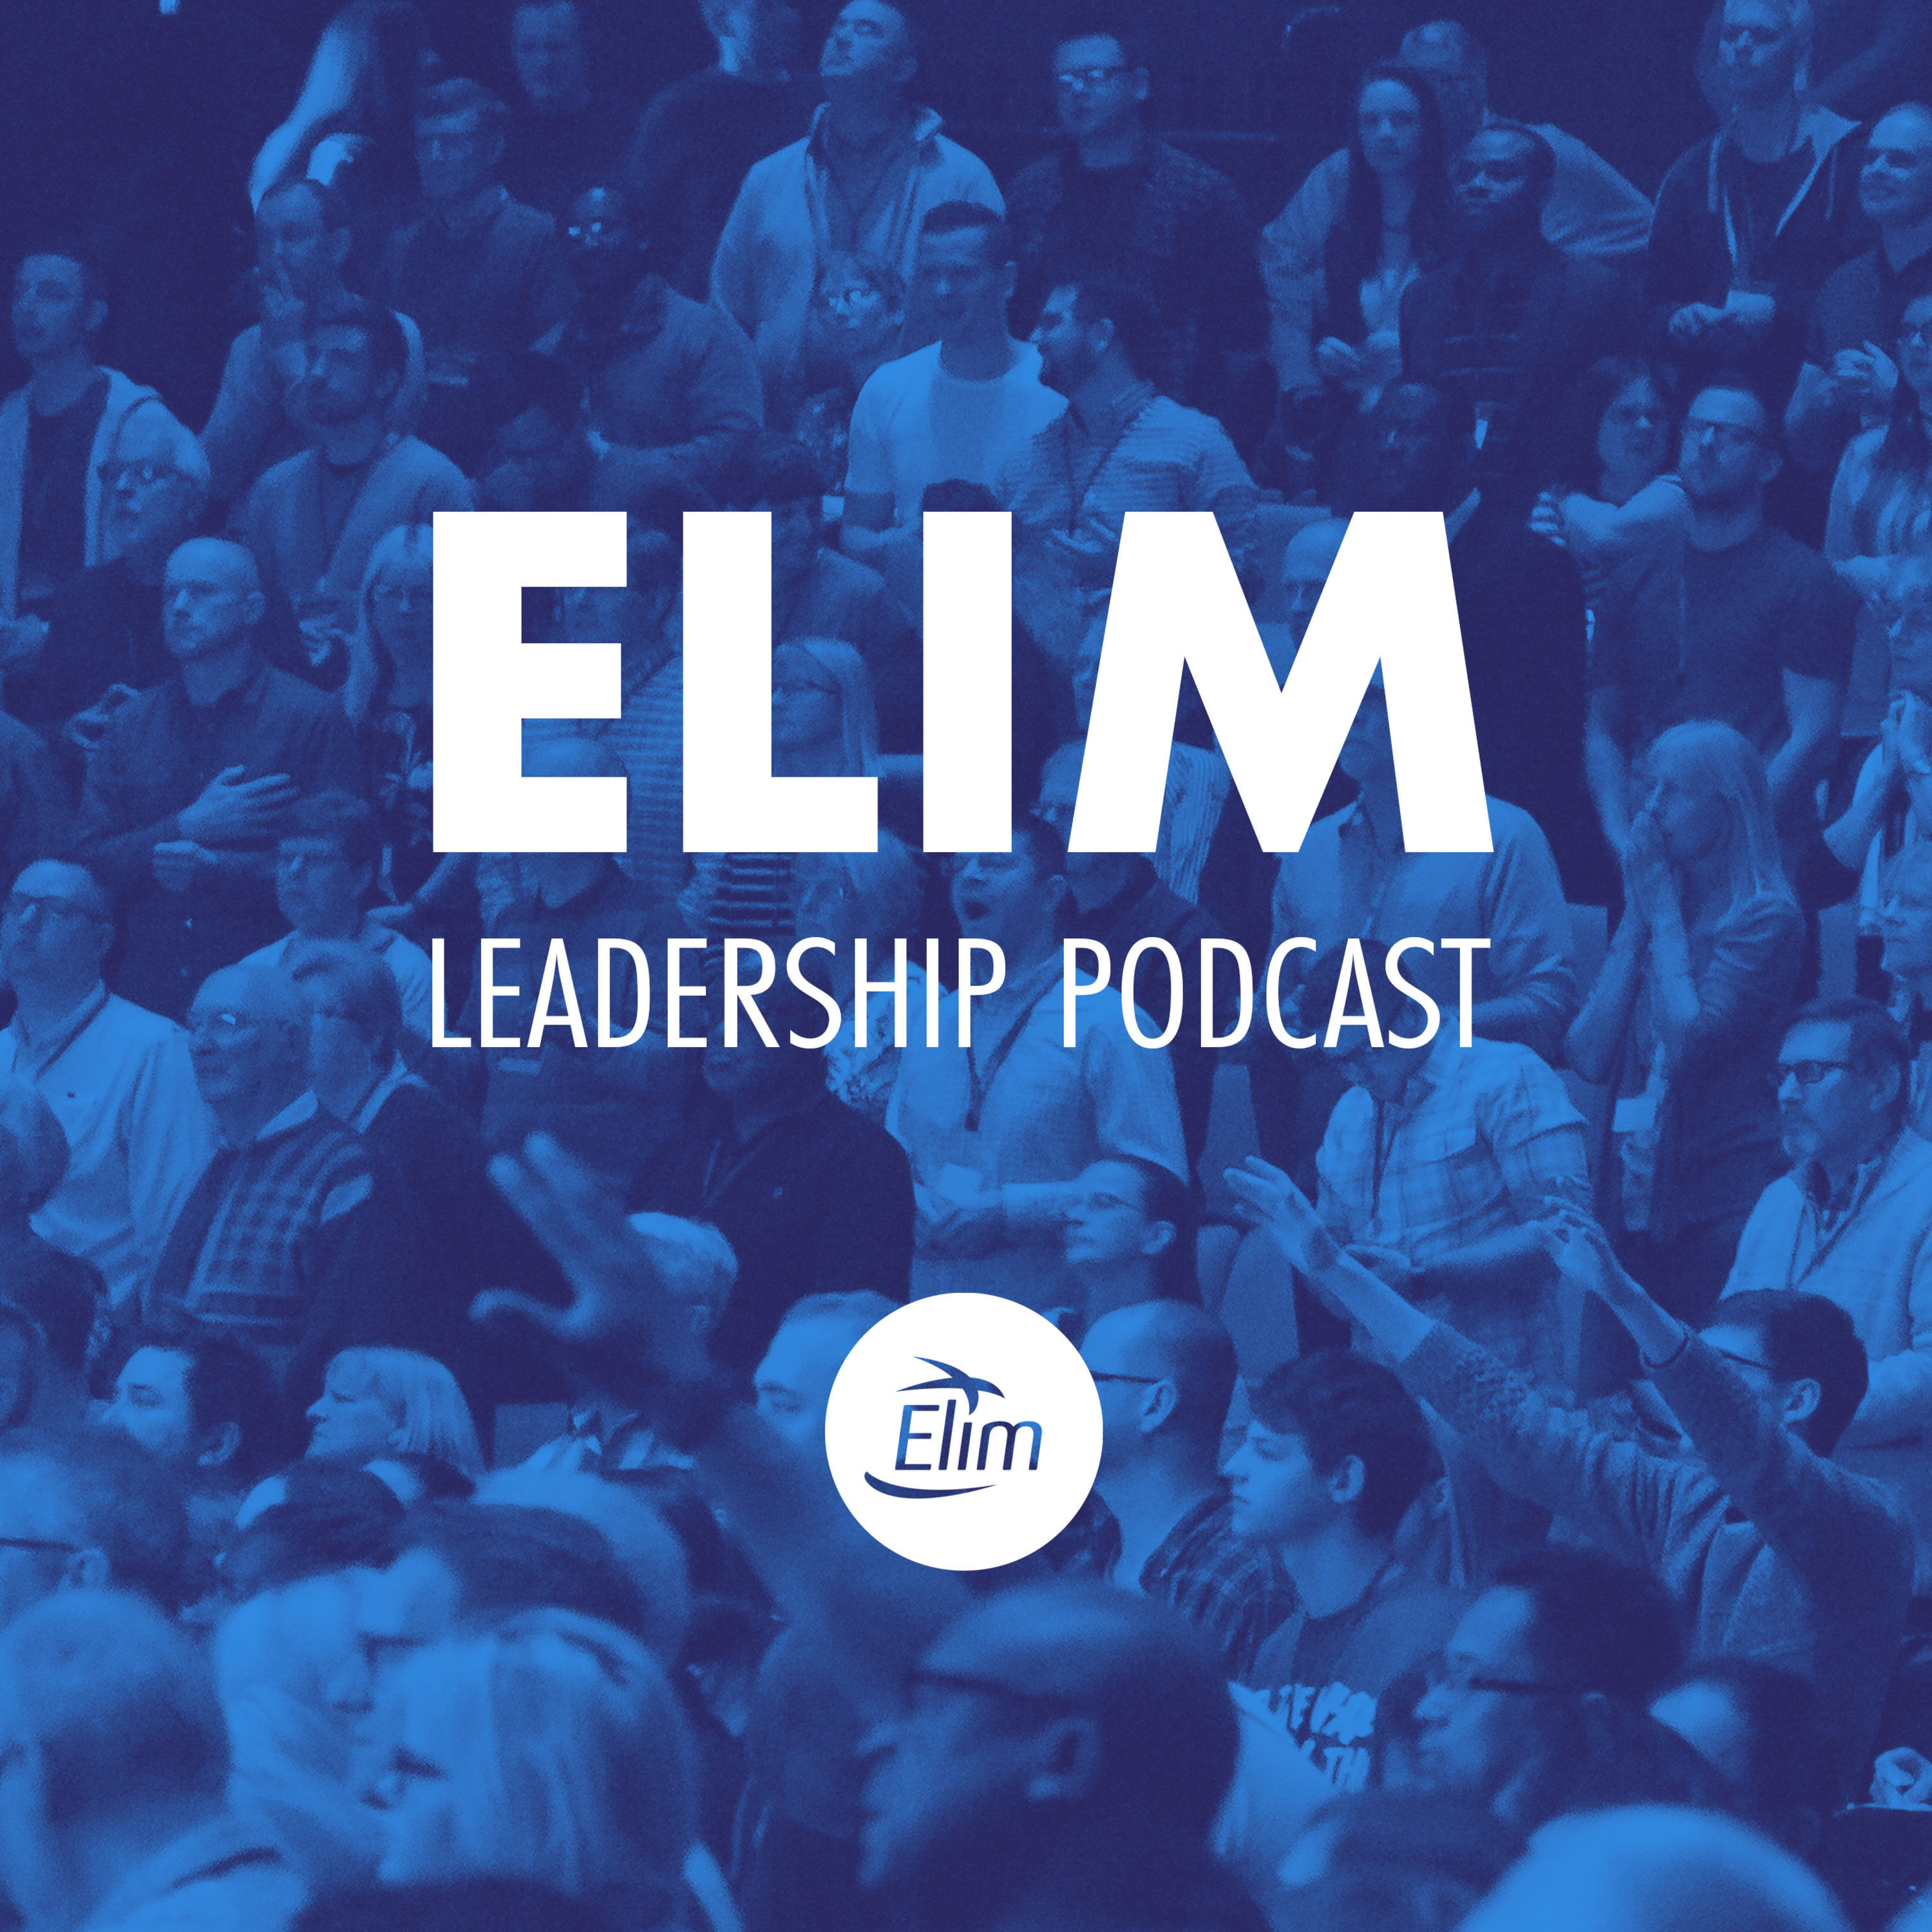 Introducing the Elim Leadership Podcast